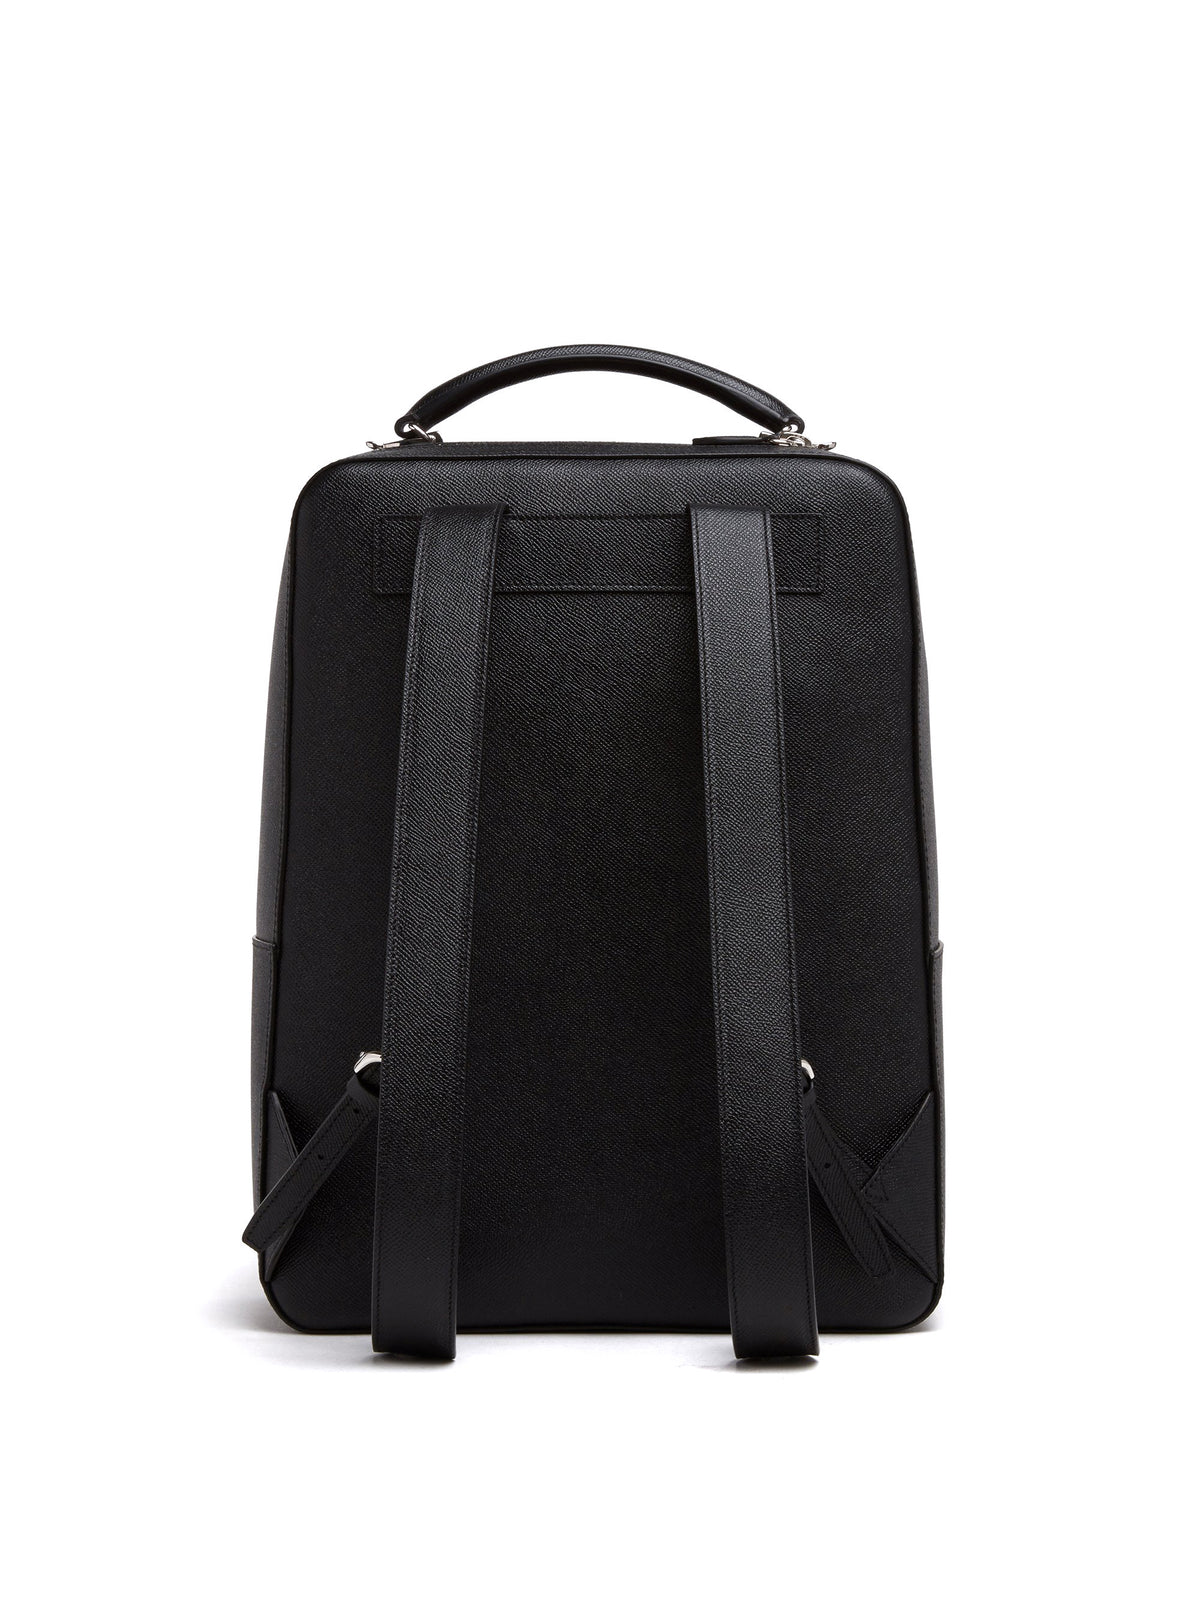 Mark Cross Alexander Leather Backpack Saffiano Black Back